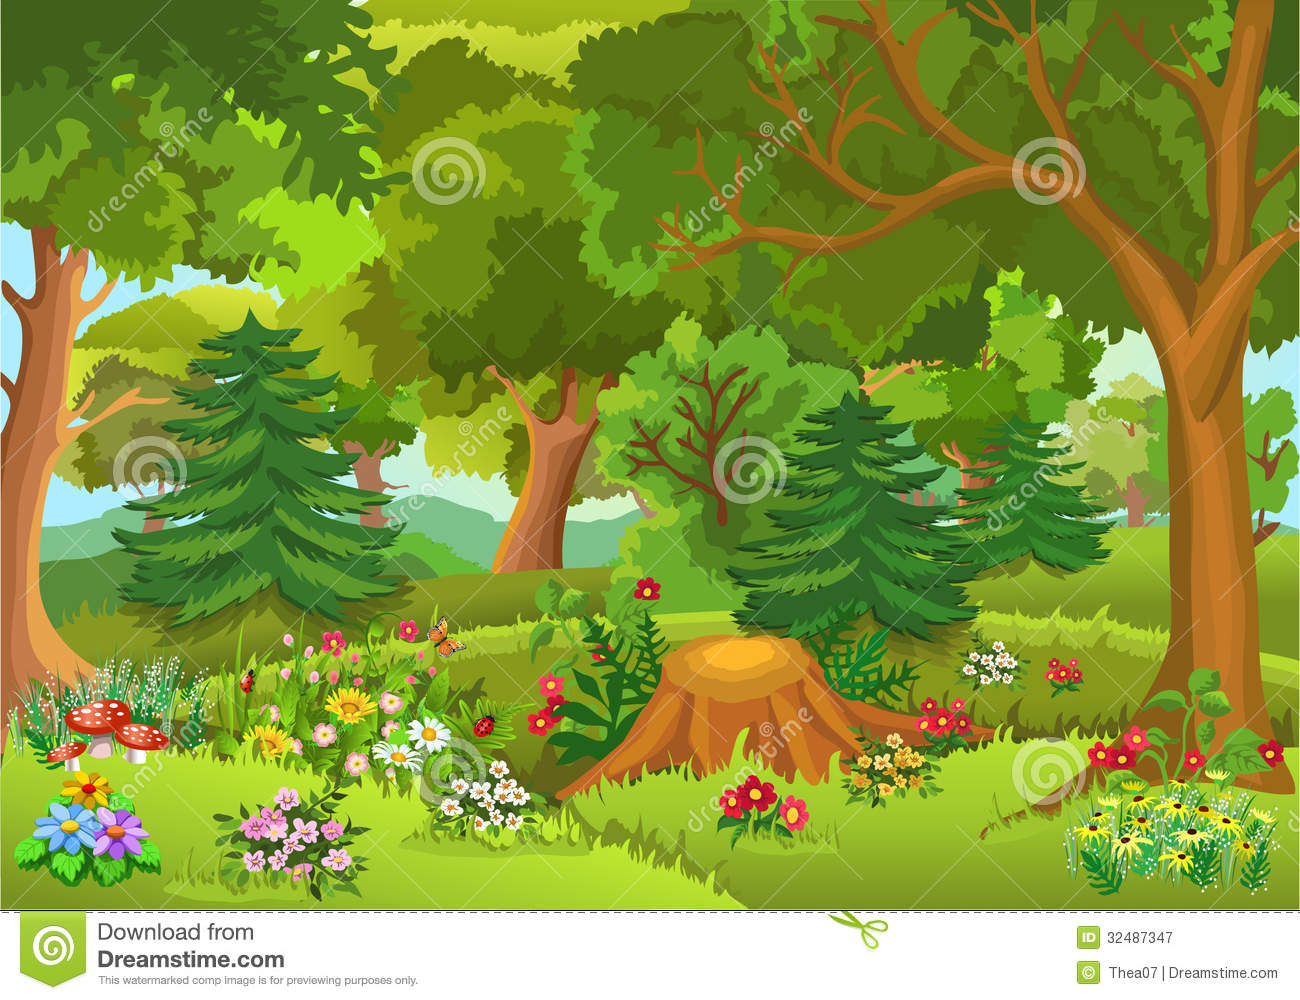 Forest cliparts vector library library Clipart of a forest - ClipartFest vector library library